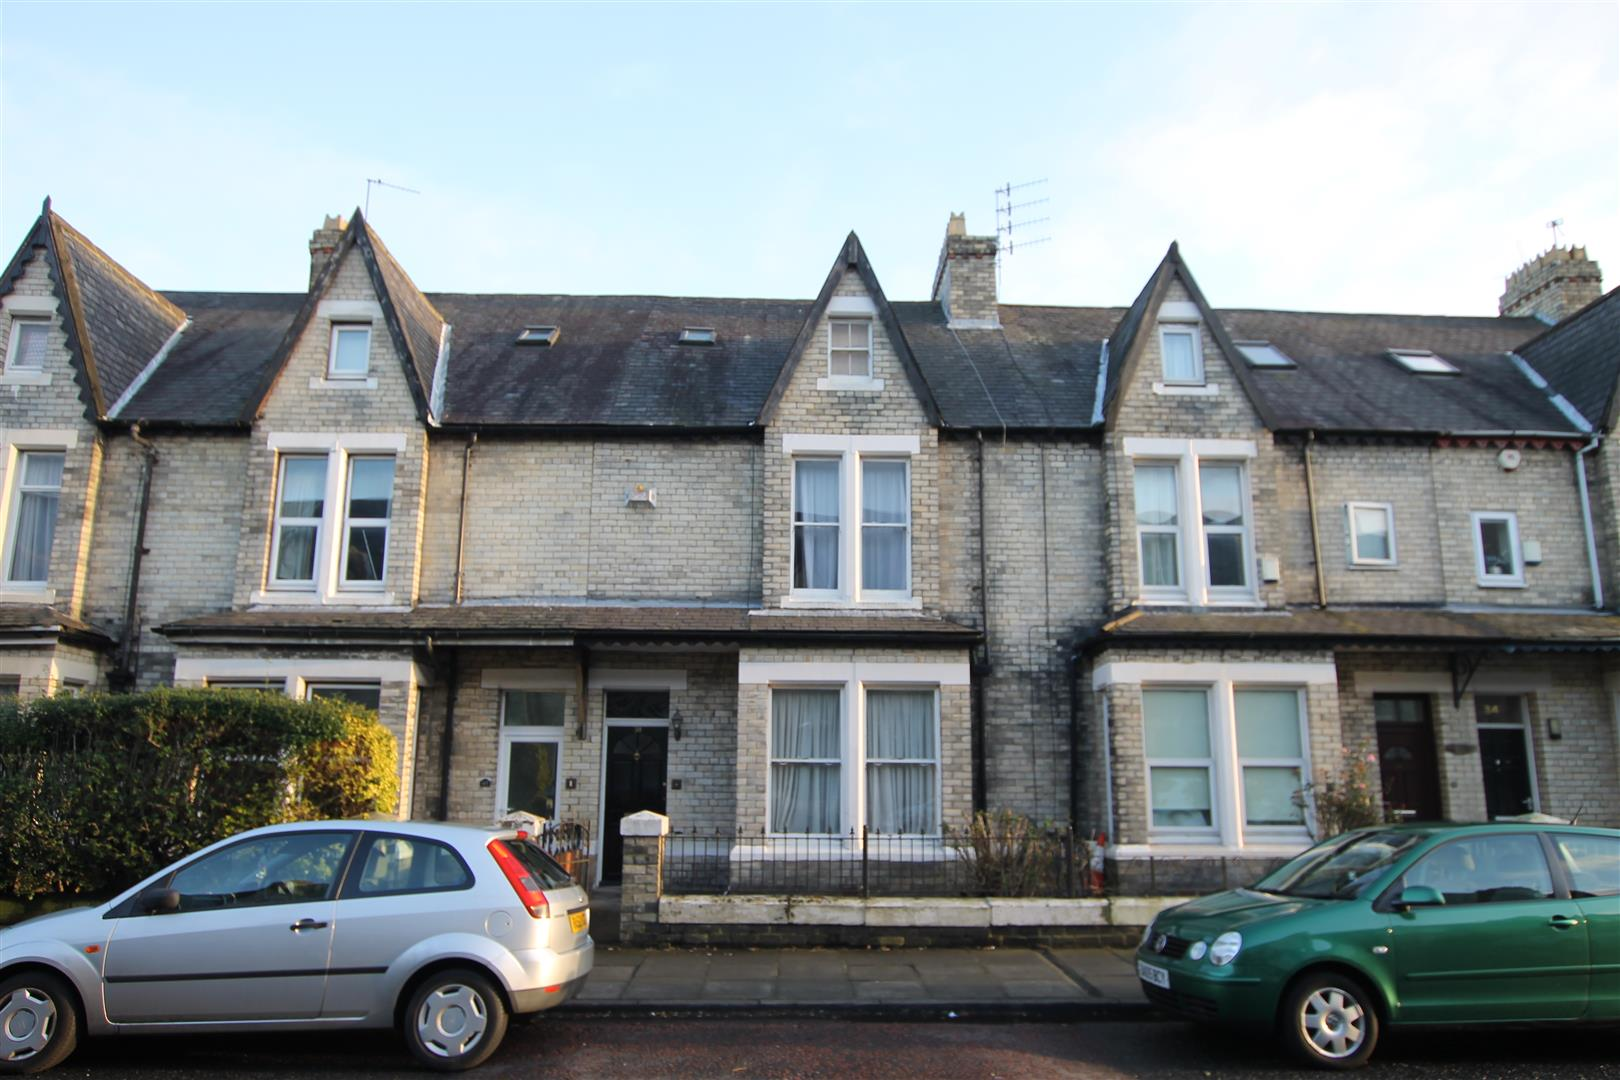 Cardigan Terrace Newcastle Upon Tyne, 3 Bedrooms  House - terraced ,Sold (STC)